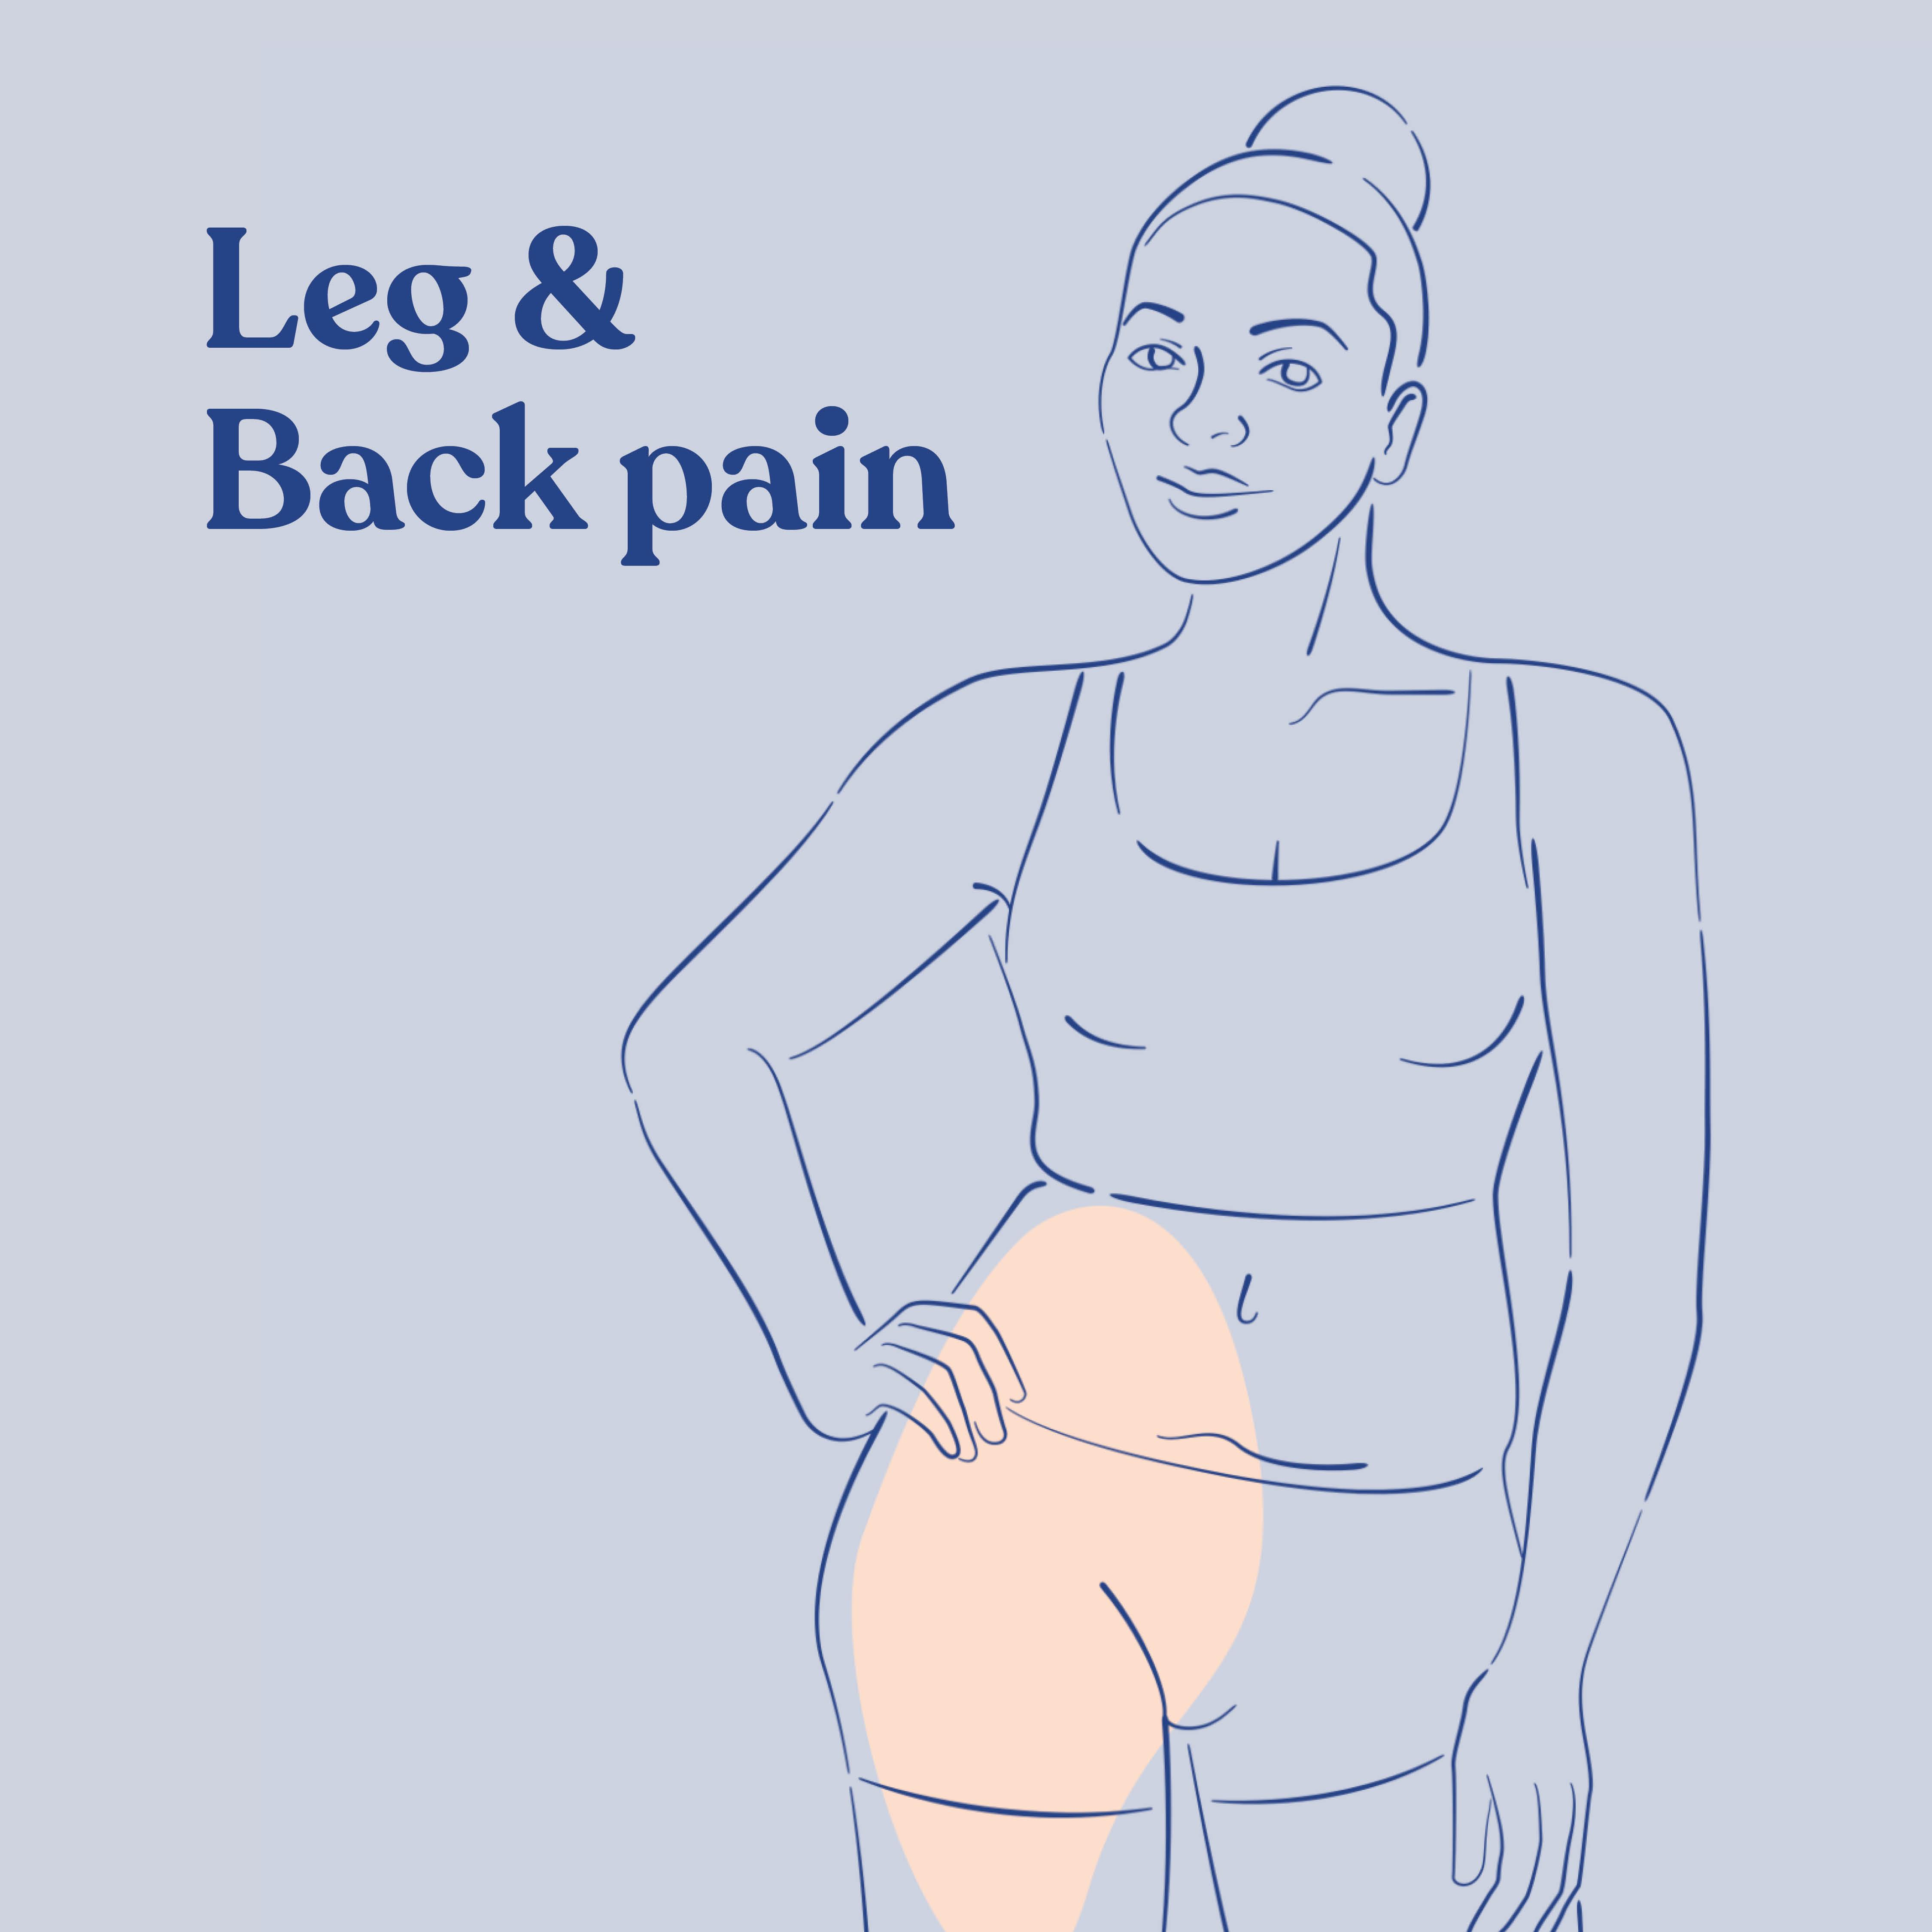 Leg and back pain, Symptoms treated by Accessa Procedure